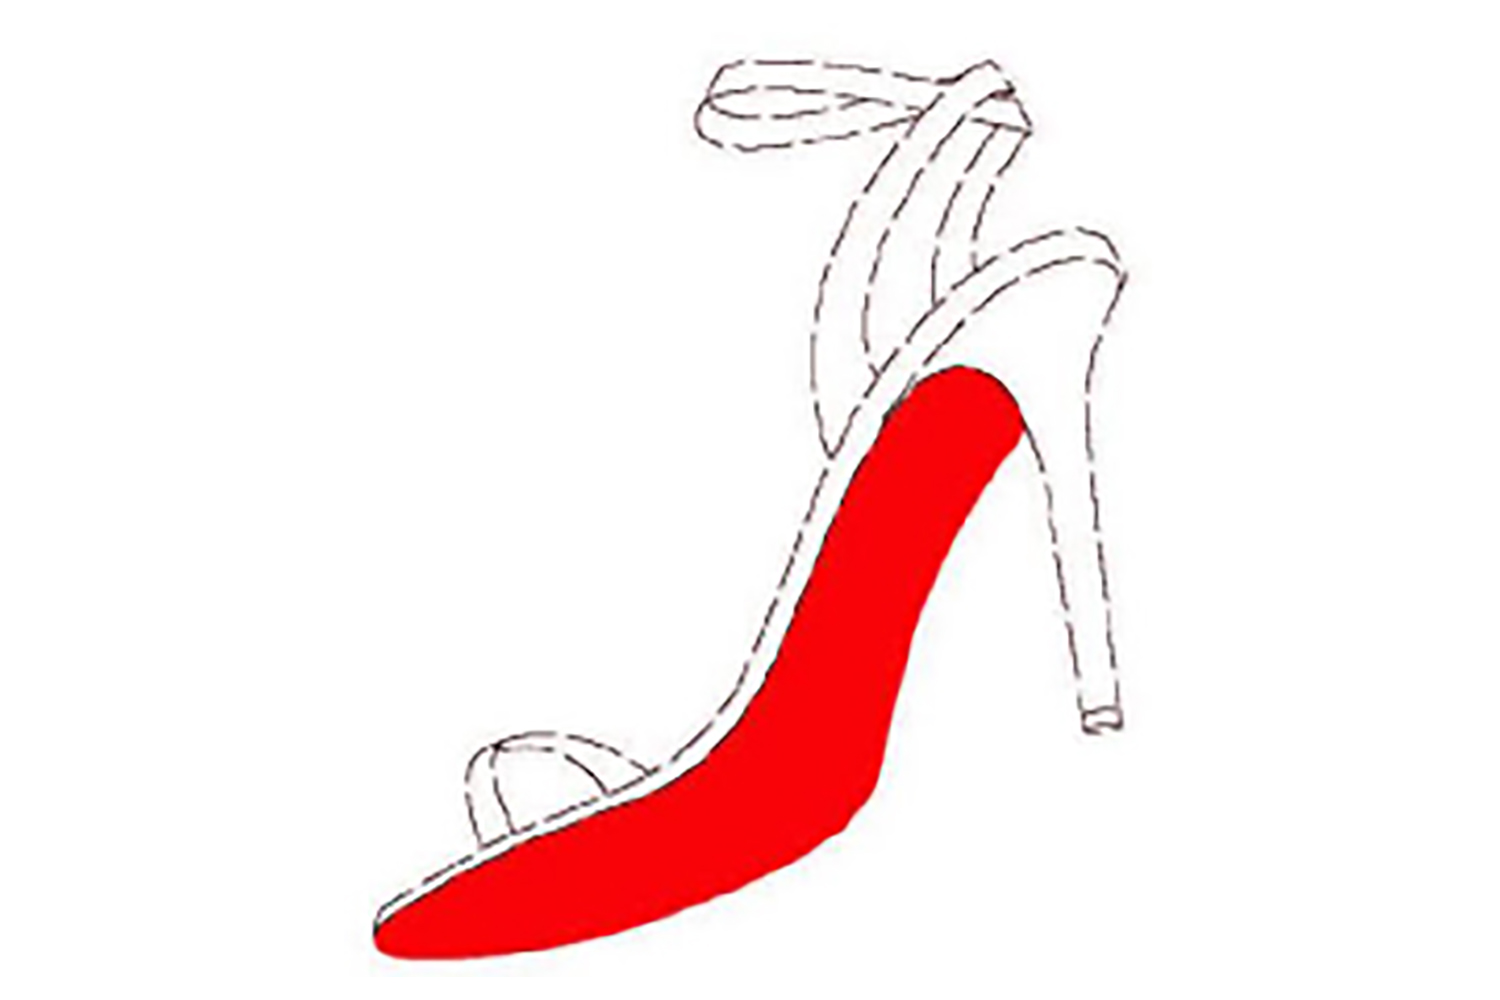 In Day Louboutin's Victory Law Europe Fashion Institute QCxdeBroW